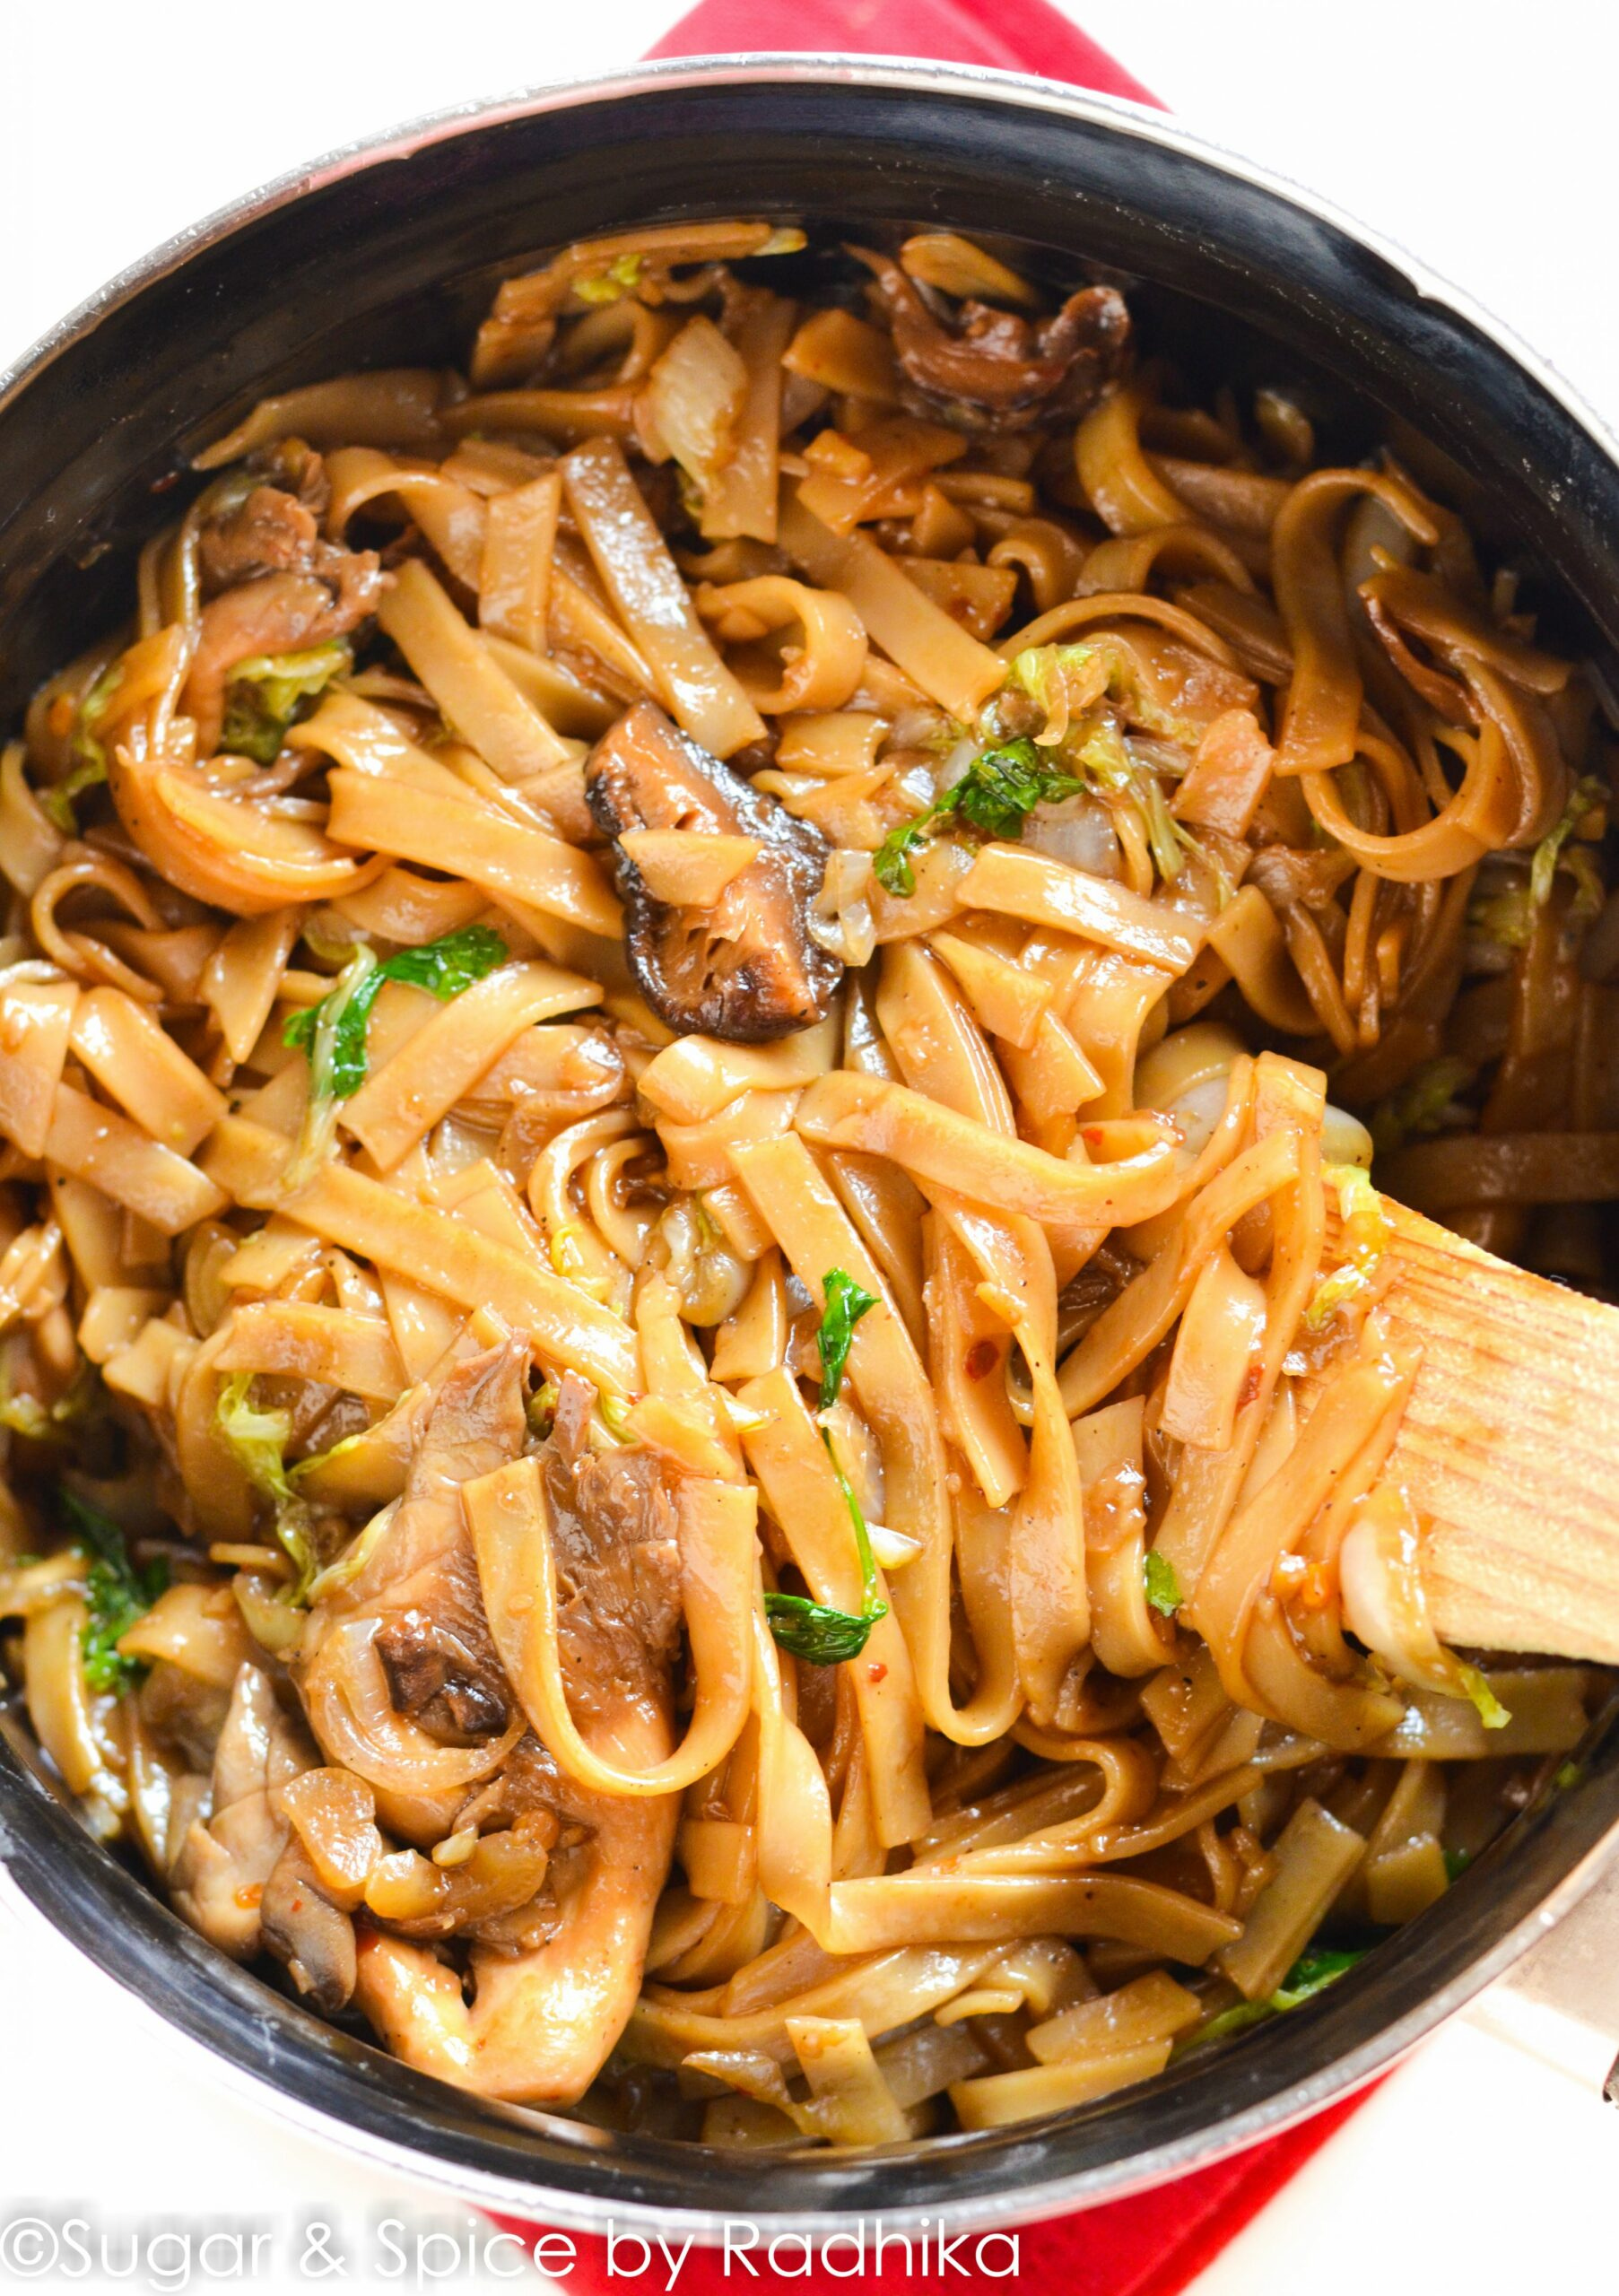 Rice Stick Noodles with Shiitake and Oyster Mushrooms - Cook Gourmet - Recipes Rice Stick Noodles